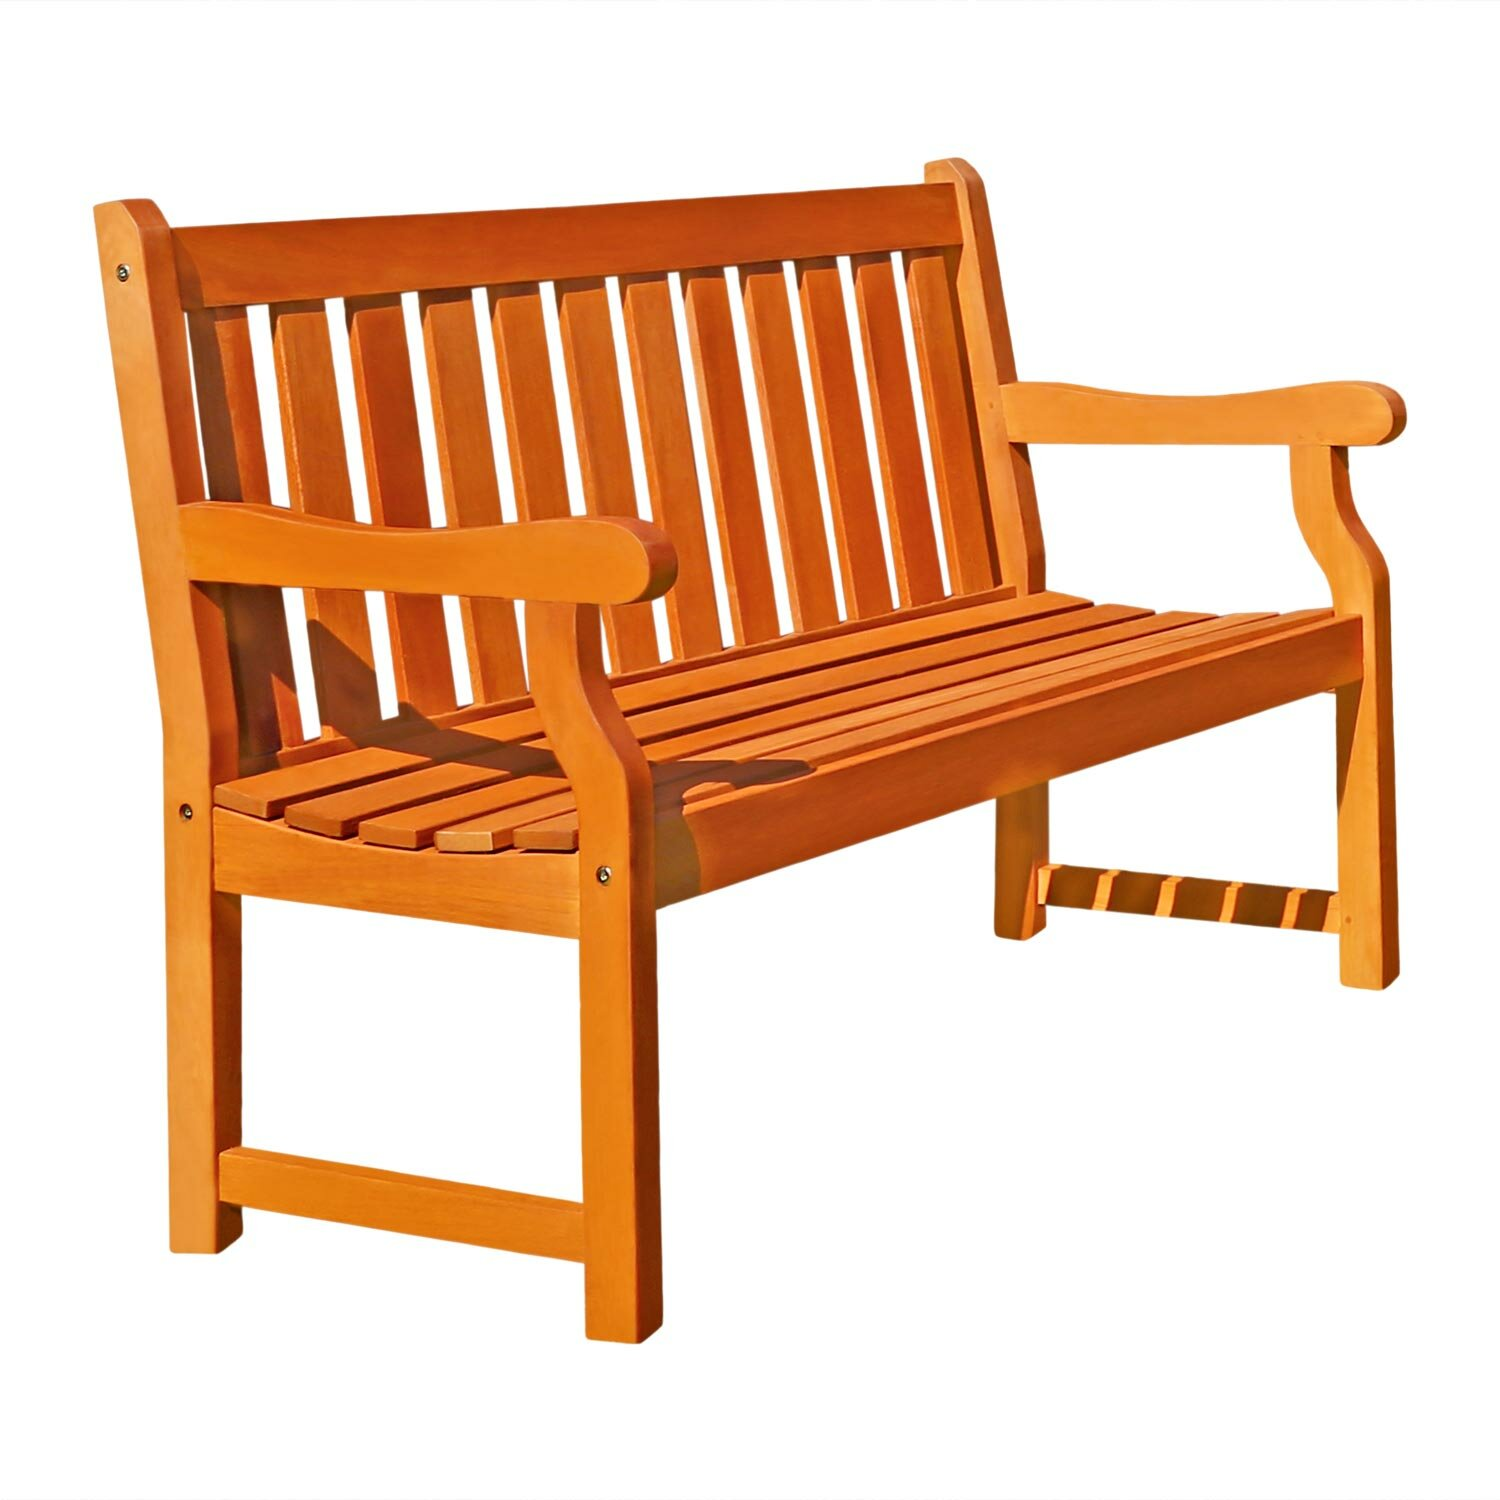 Vifah Marisol Garden Bench Reviews Wayfair